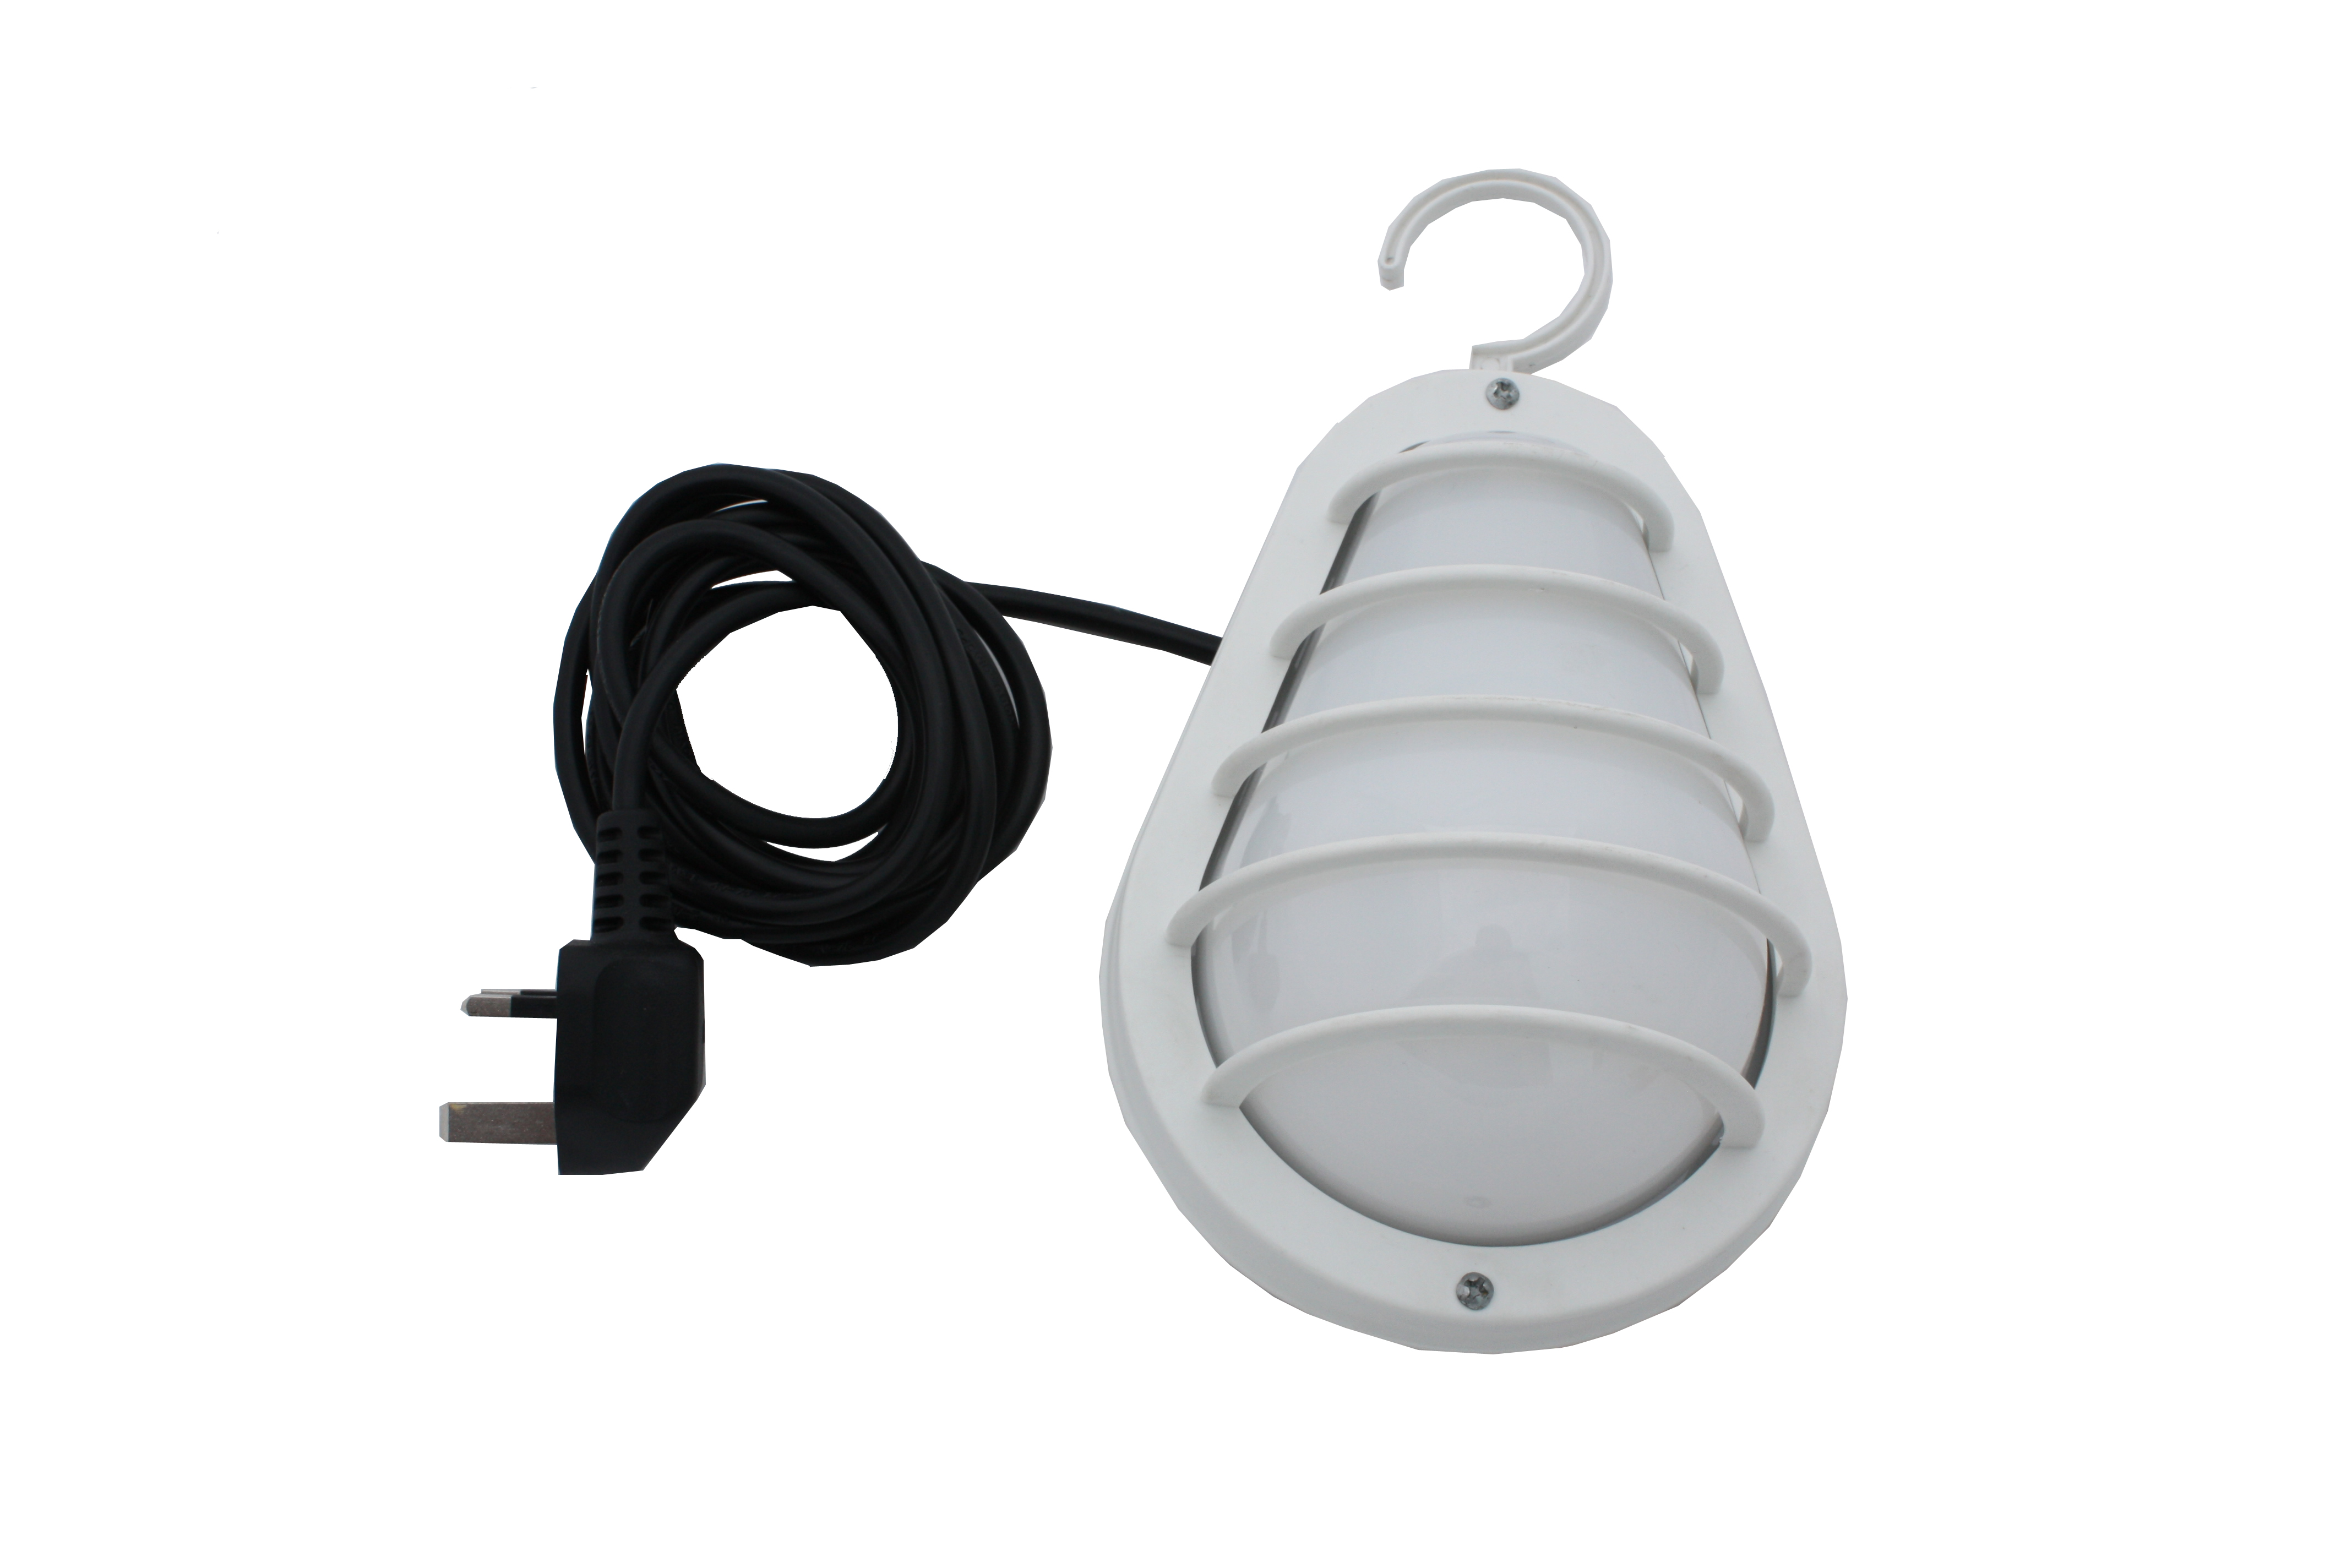 Sunnflair Platinum Awning/Tent Light